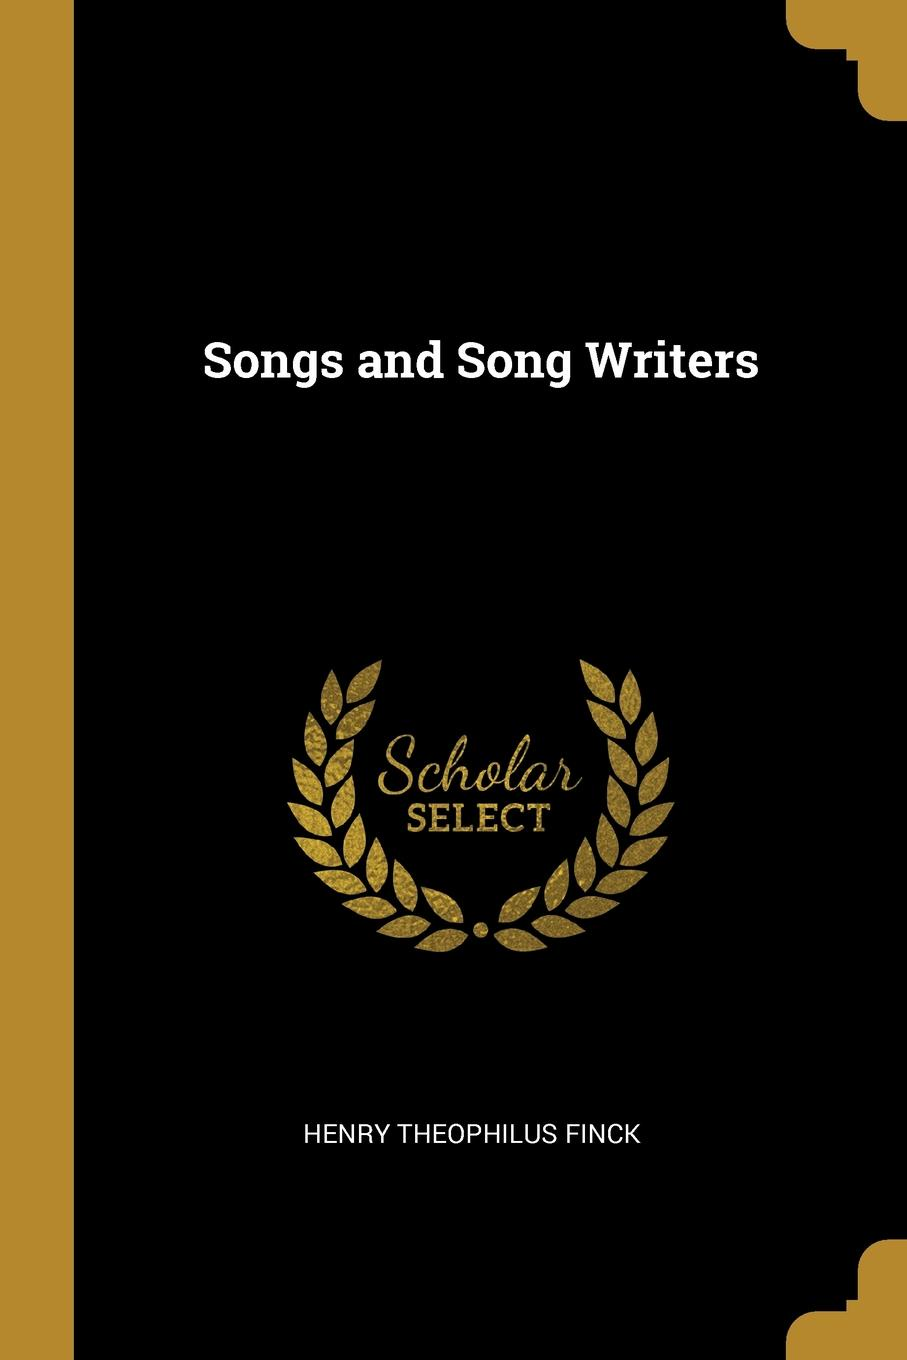 Henry Theophilus Finck. Songs and Song Writers